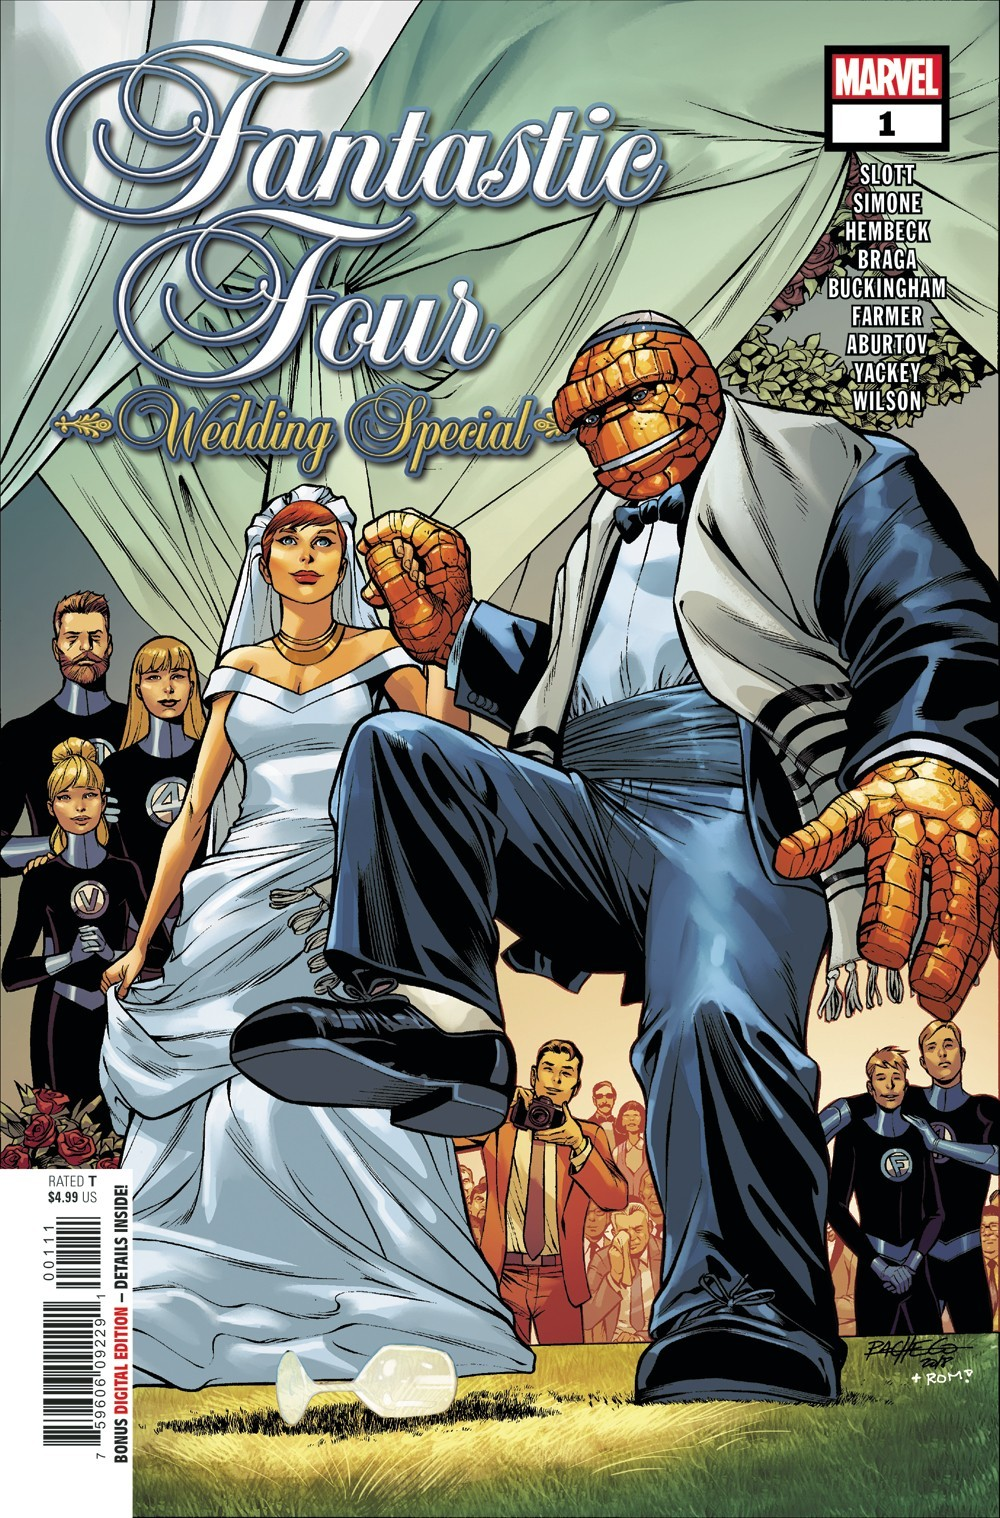 Preview: Fantastic Four Wedding Special #1